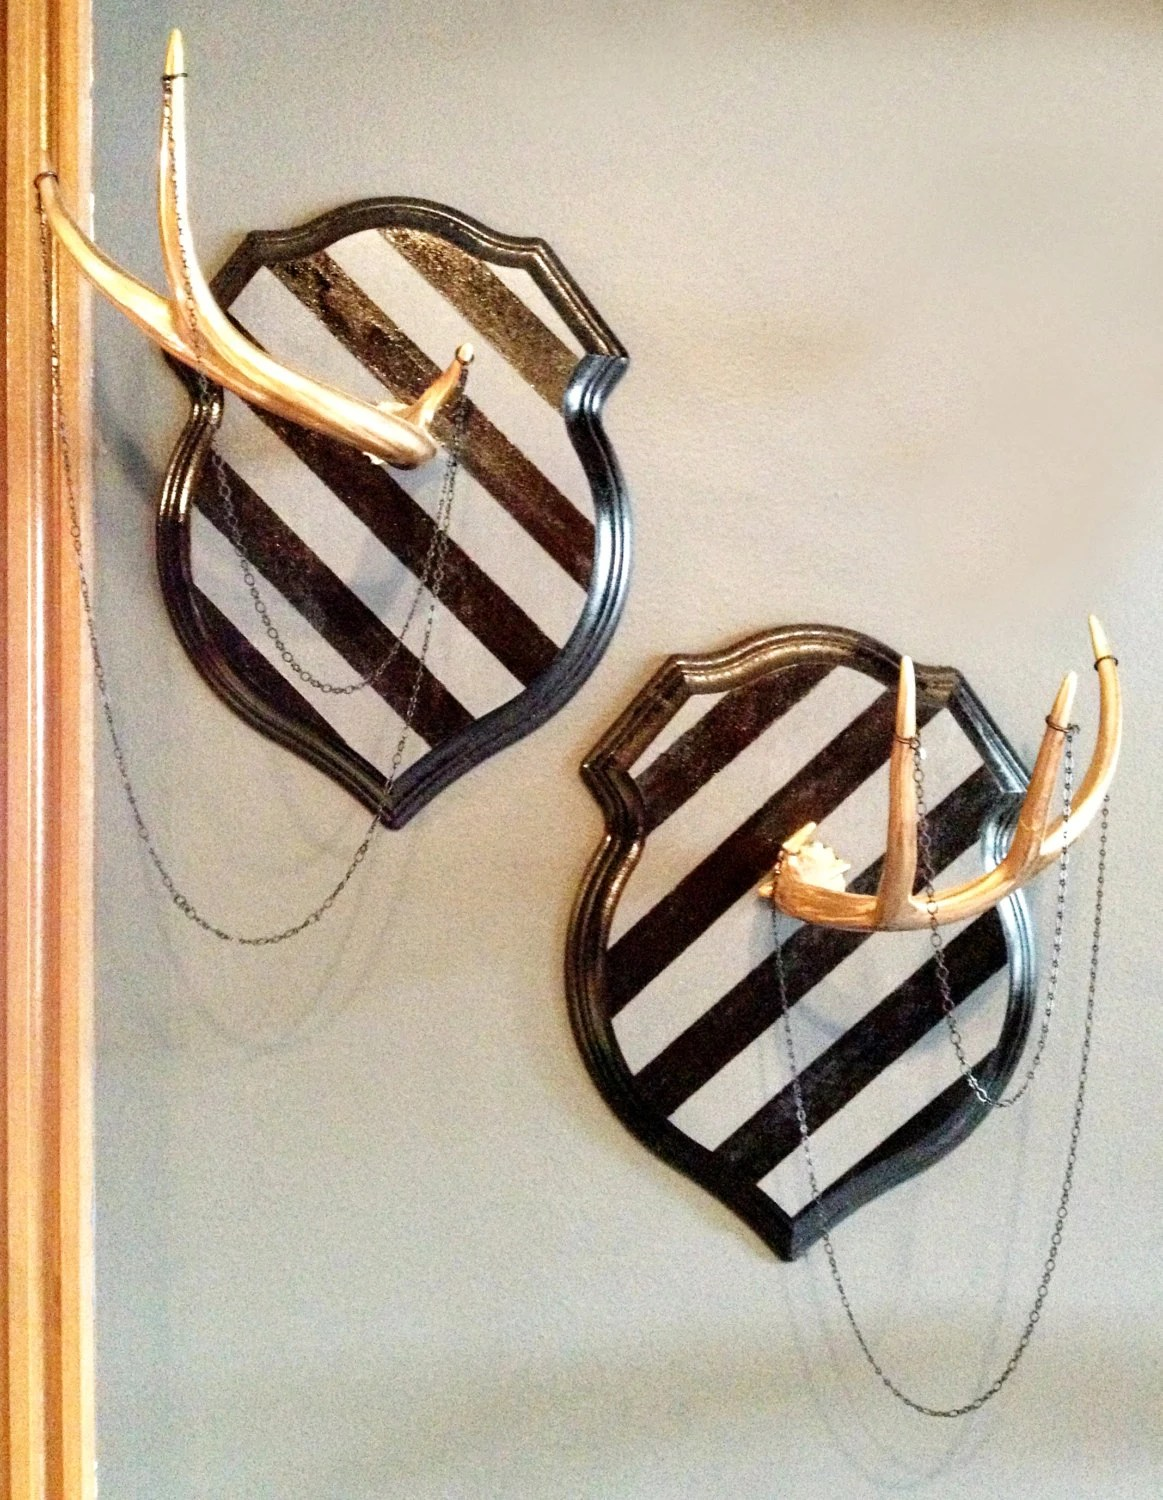 Set of Rustic Luxe Shed Deer Antlers Mounted on Striped Crests